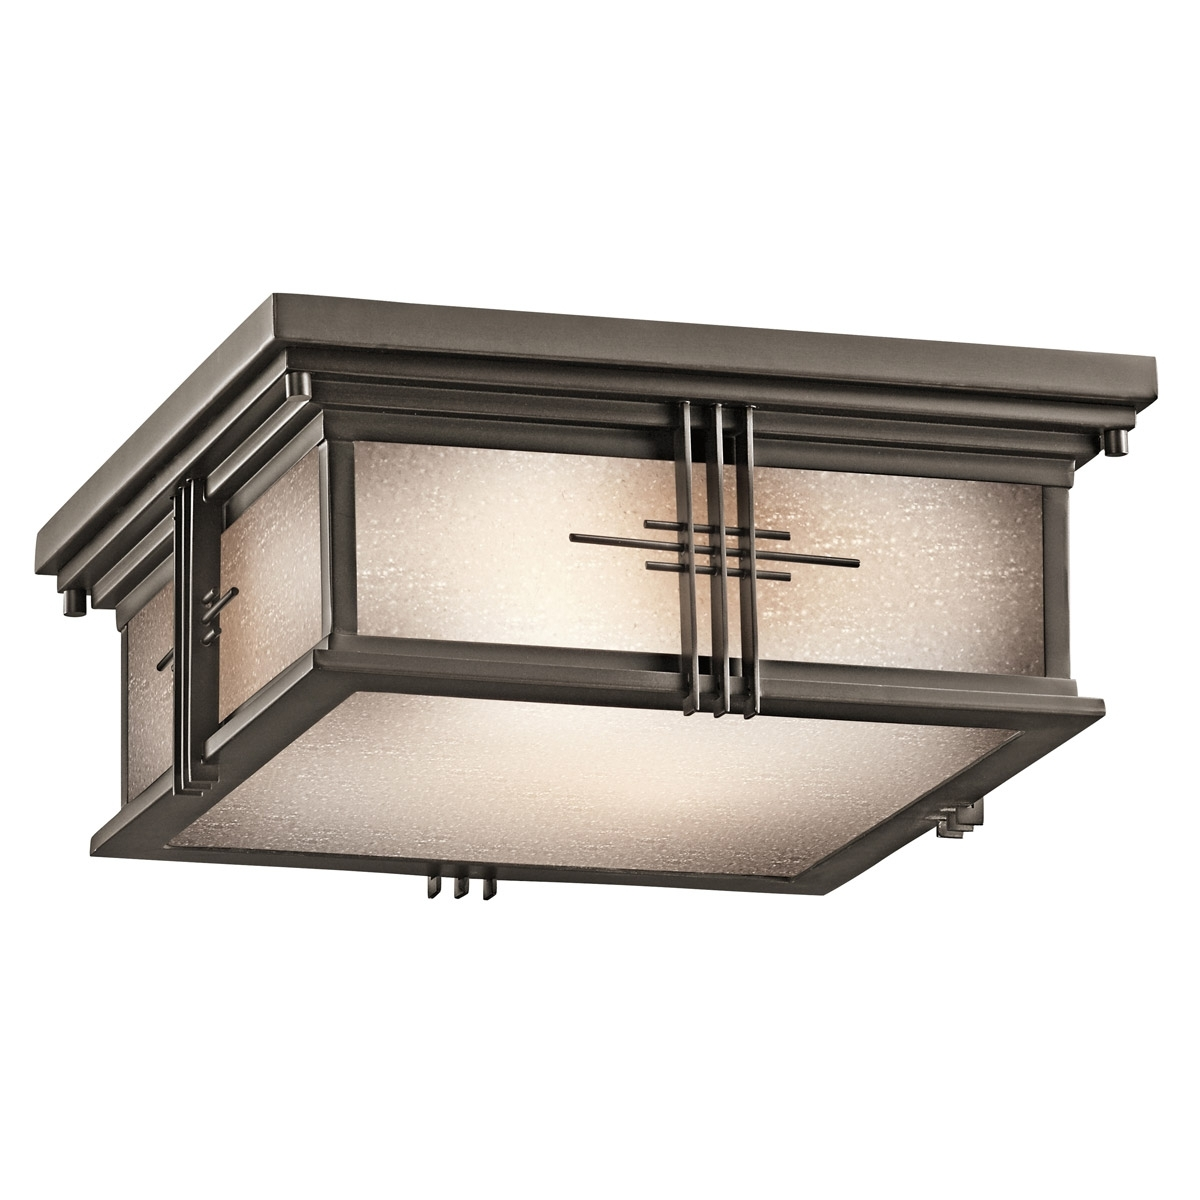 Inspiration about 49164Oz Portman Square Outdoor Flush Mount Ceiling Fixture Regarding Outdoor Ceiling Flush Mount Lights (#12 of 15)